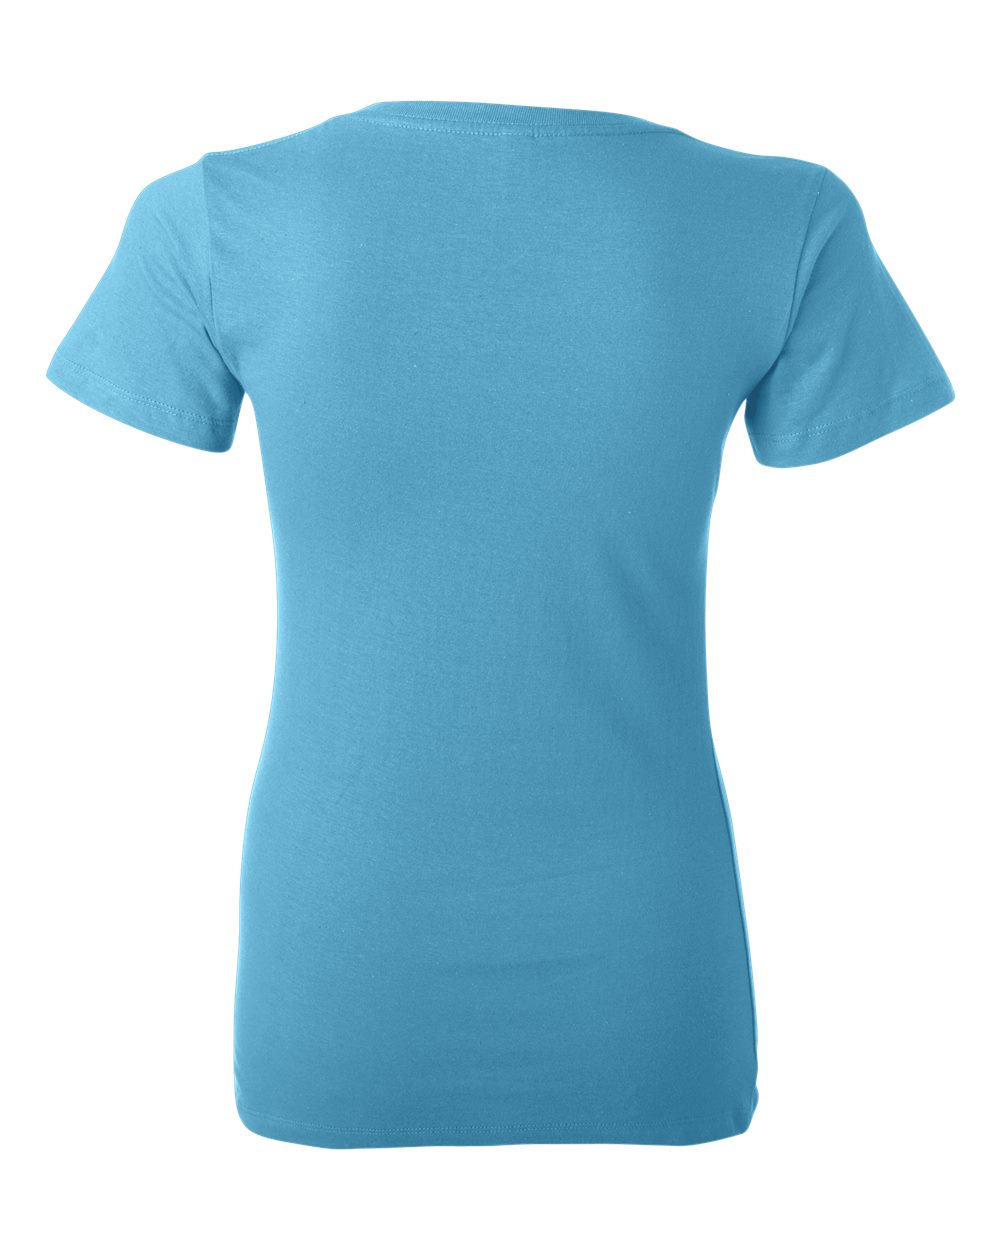 Bella-Canvas-Women-039-s-Jersey-Short-Sleeve-Deep-V-Neck-T-Shirt-B6035-S-2XL thumbnail 16